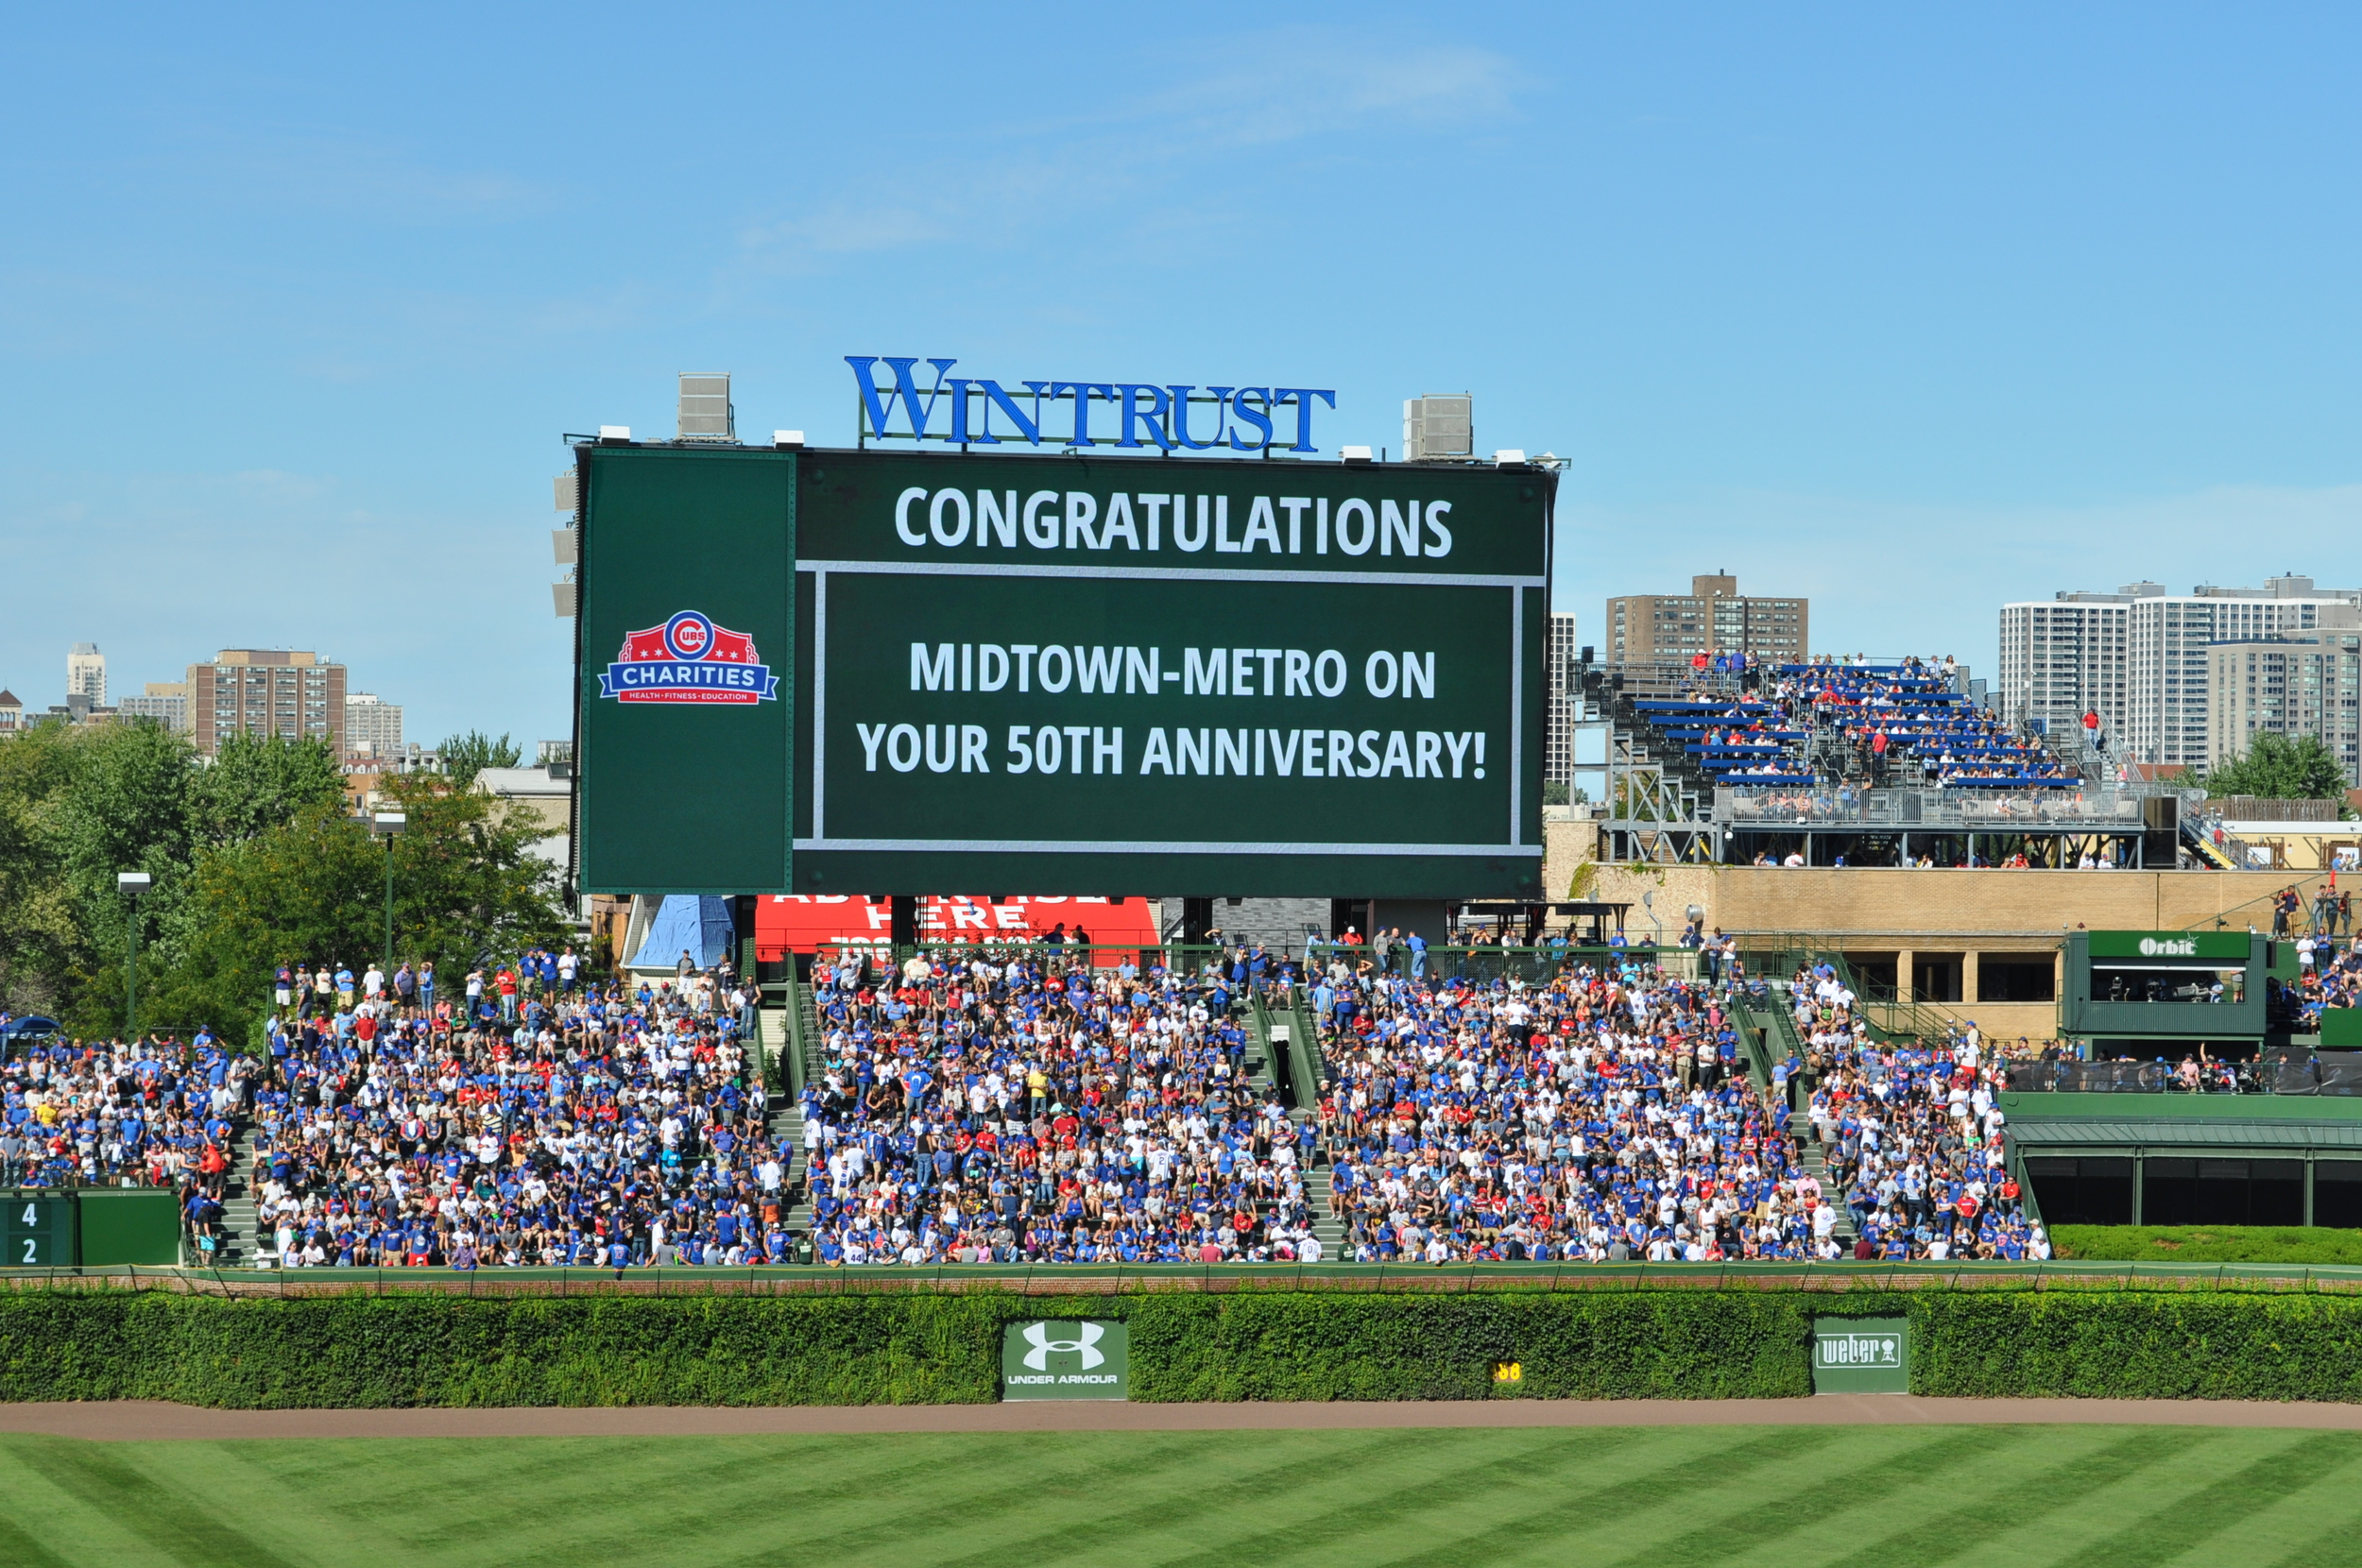 Cubs Tickets & Kuma Too Gift Card